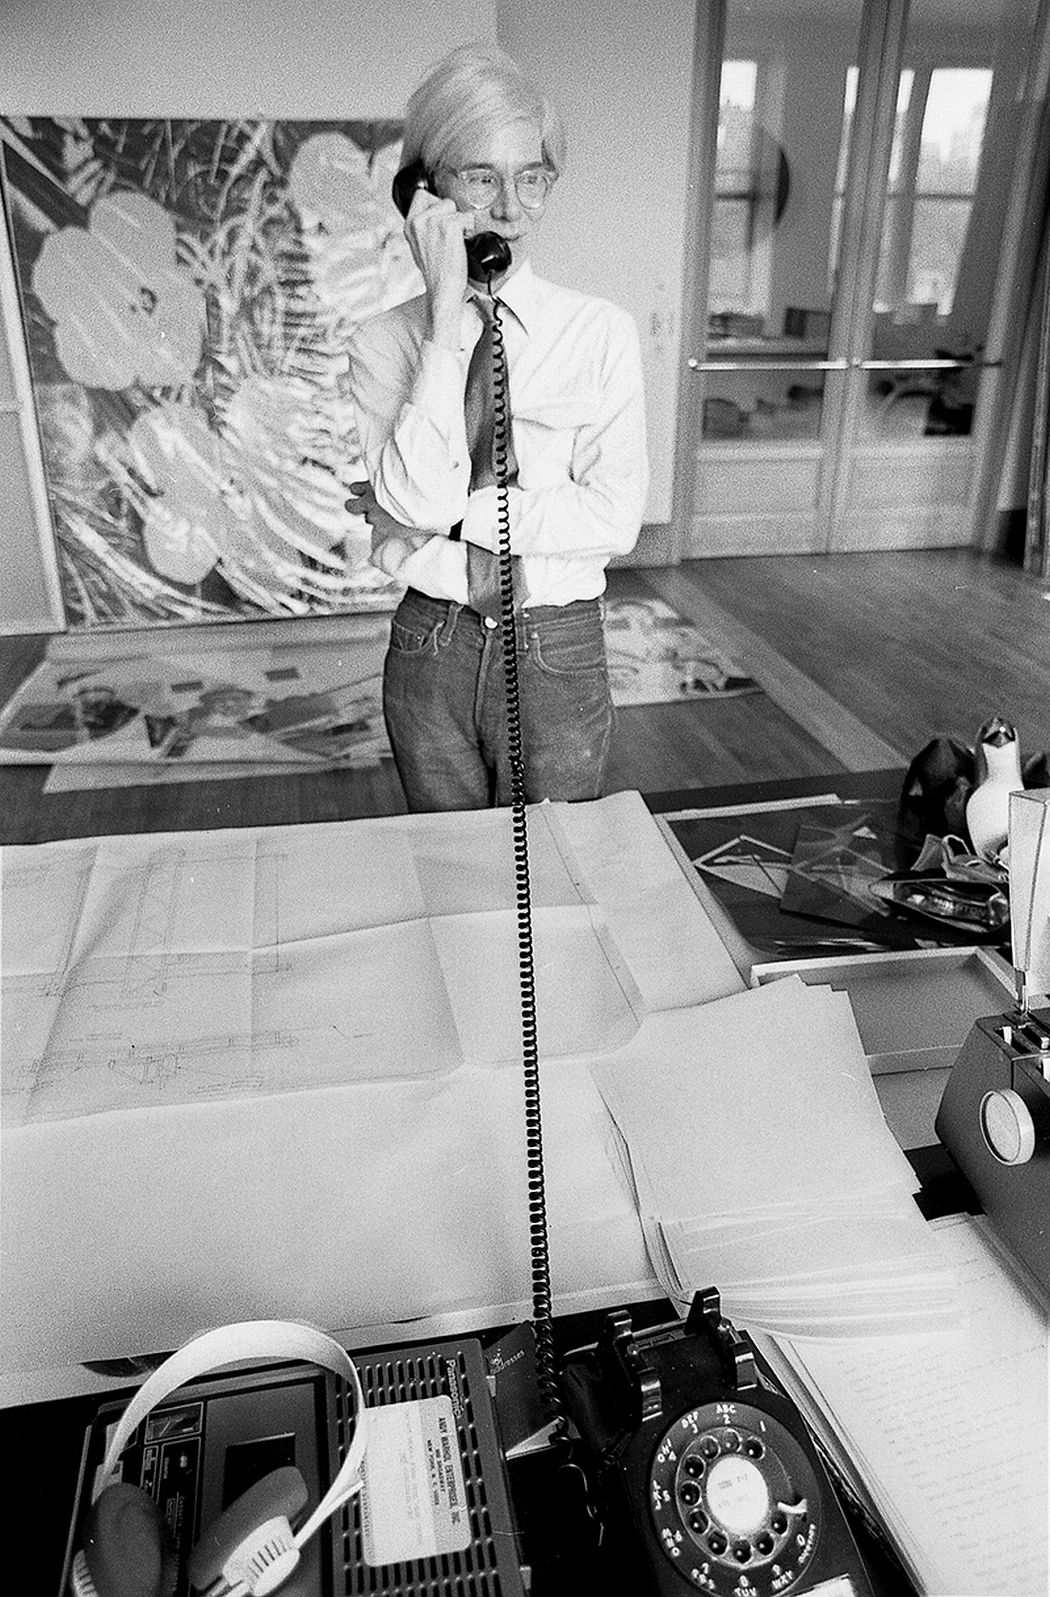 Andy Warhol on the phone at Factory in New York City (1981). Photo: Robert Levin.